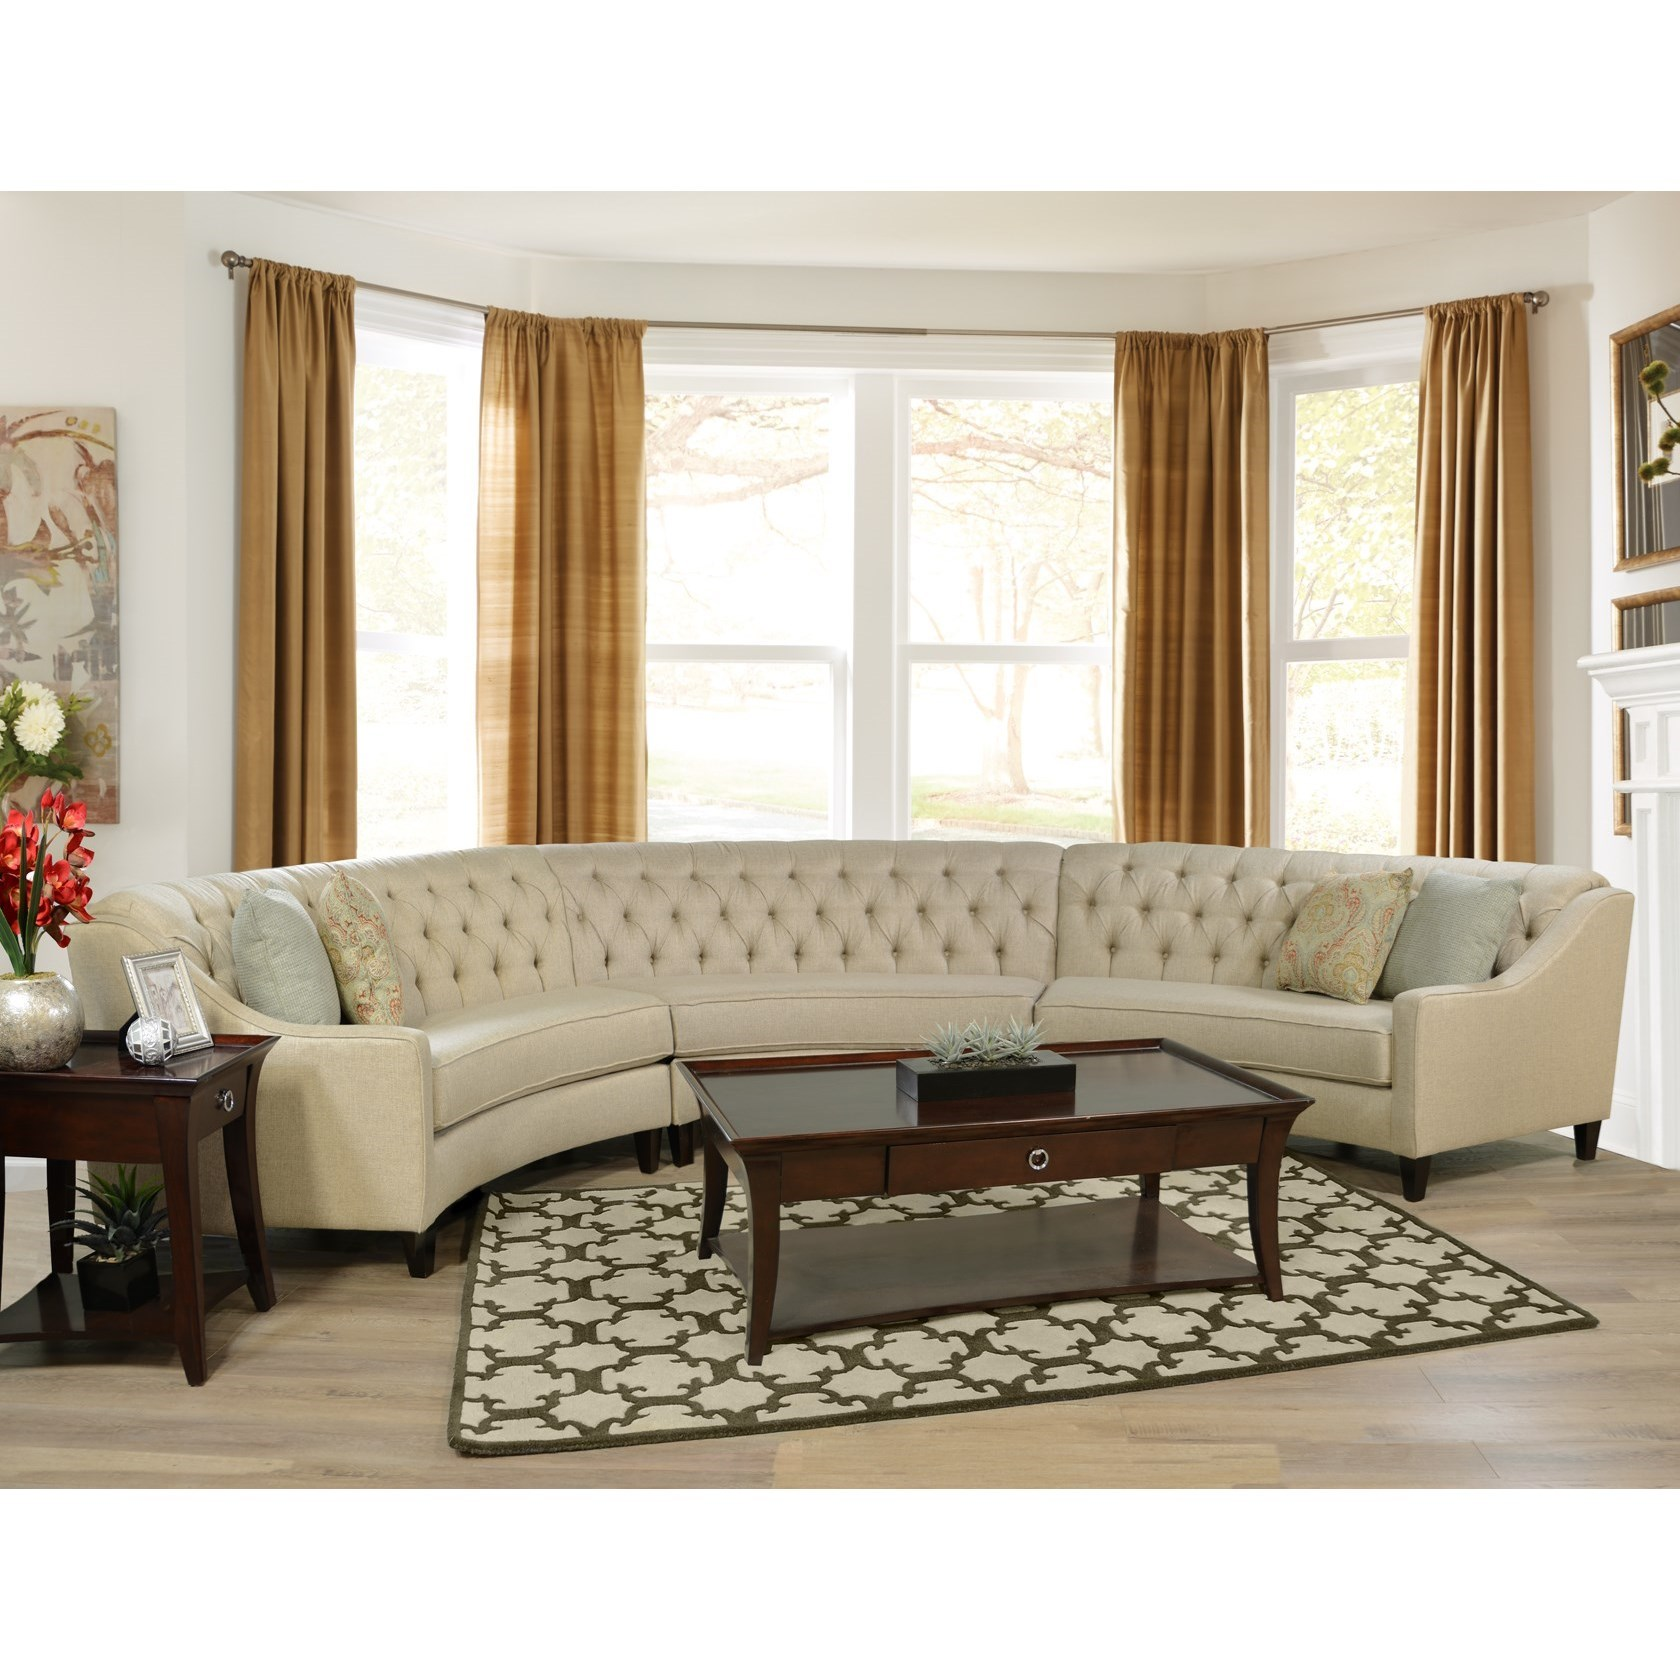 living room loveseat finneran 3 curved sectional sofa s 10103